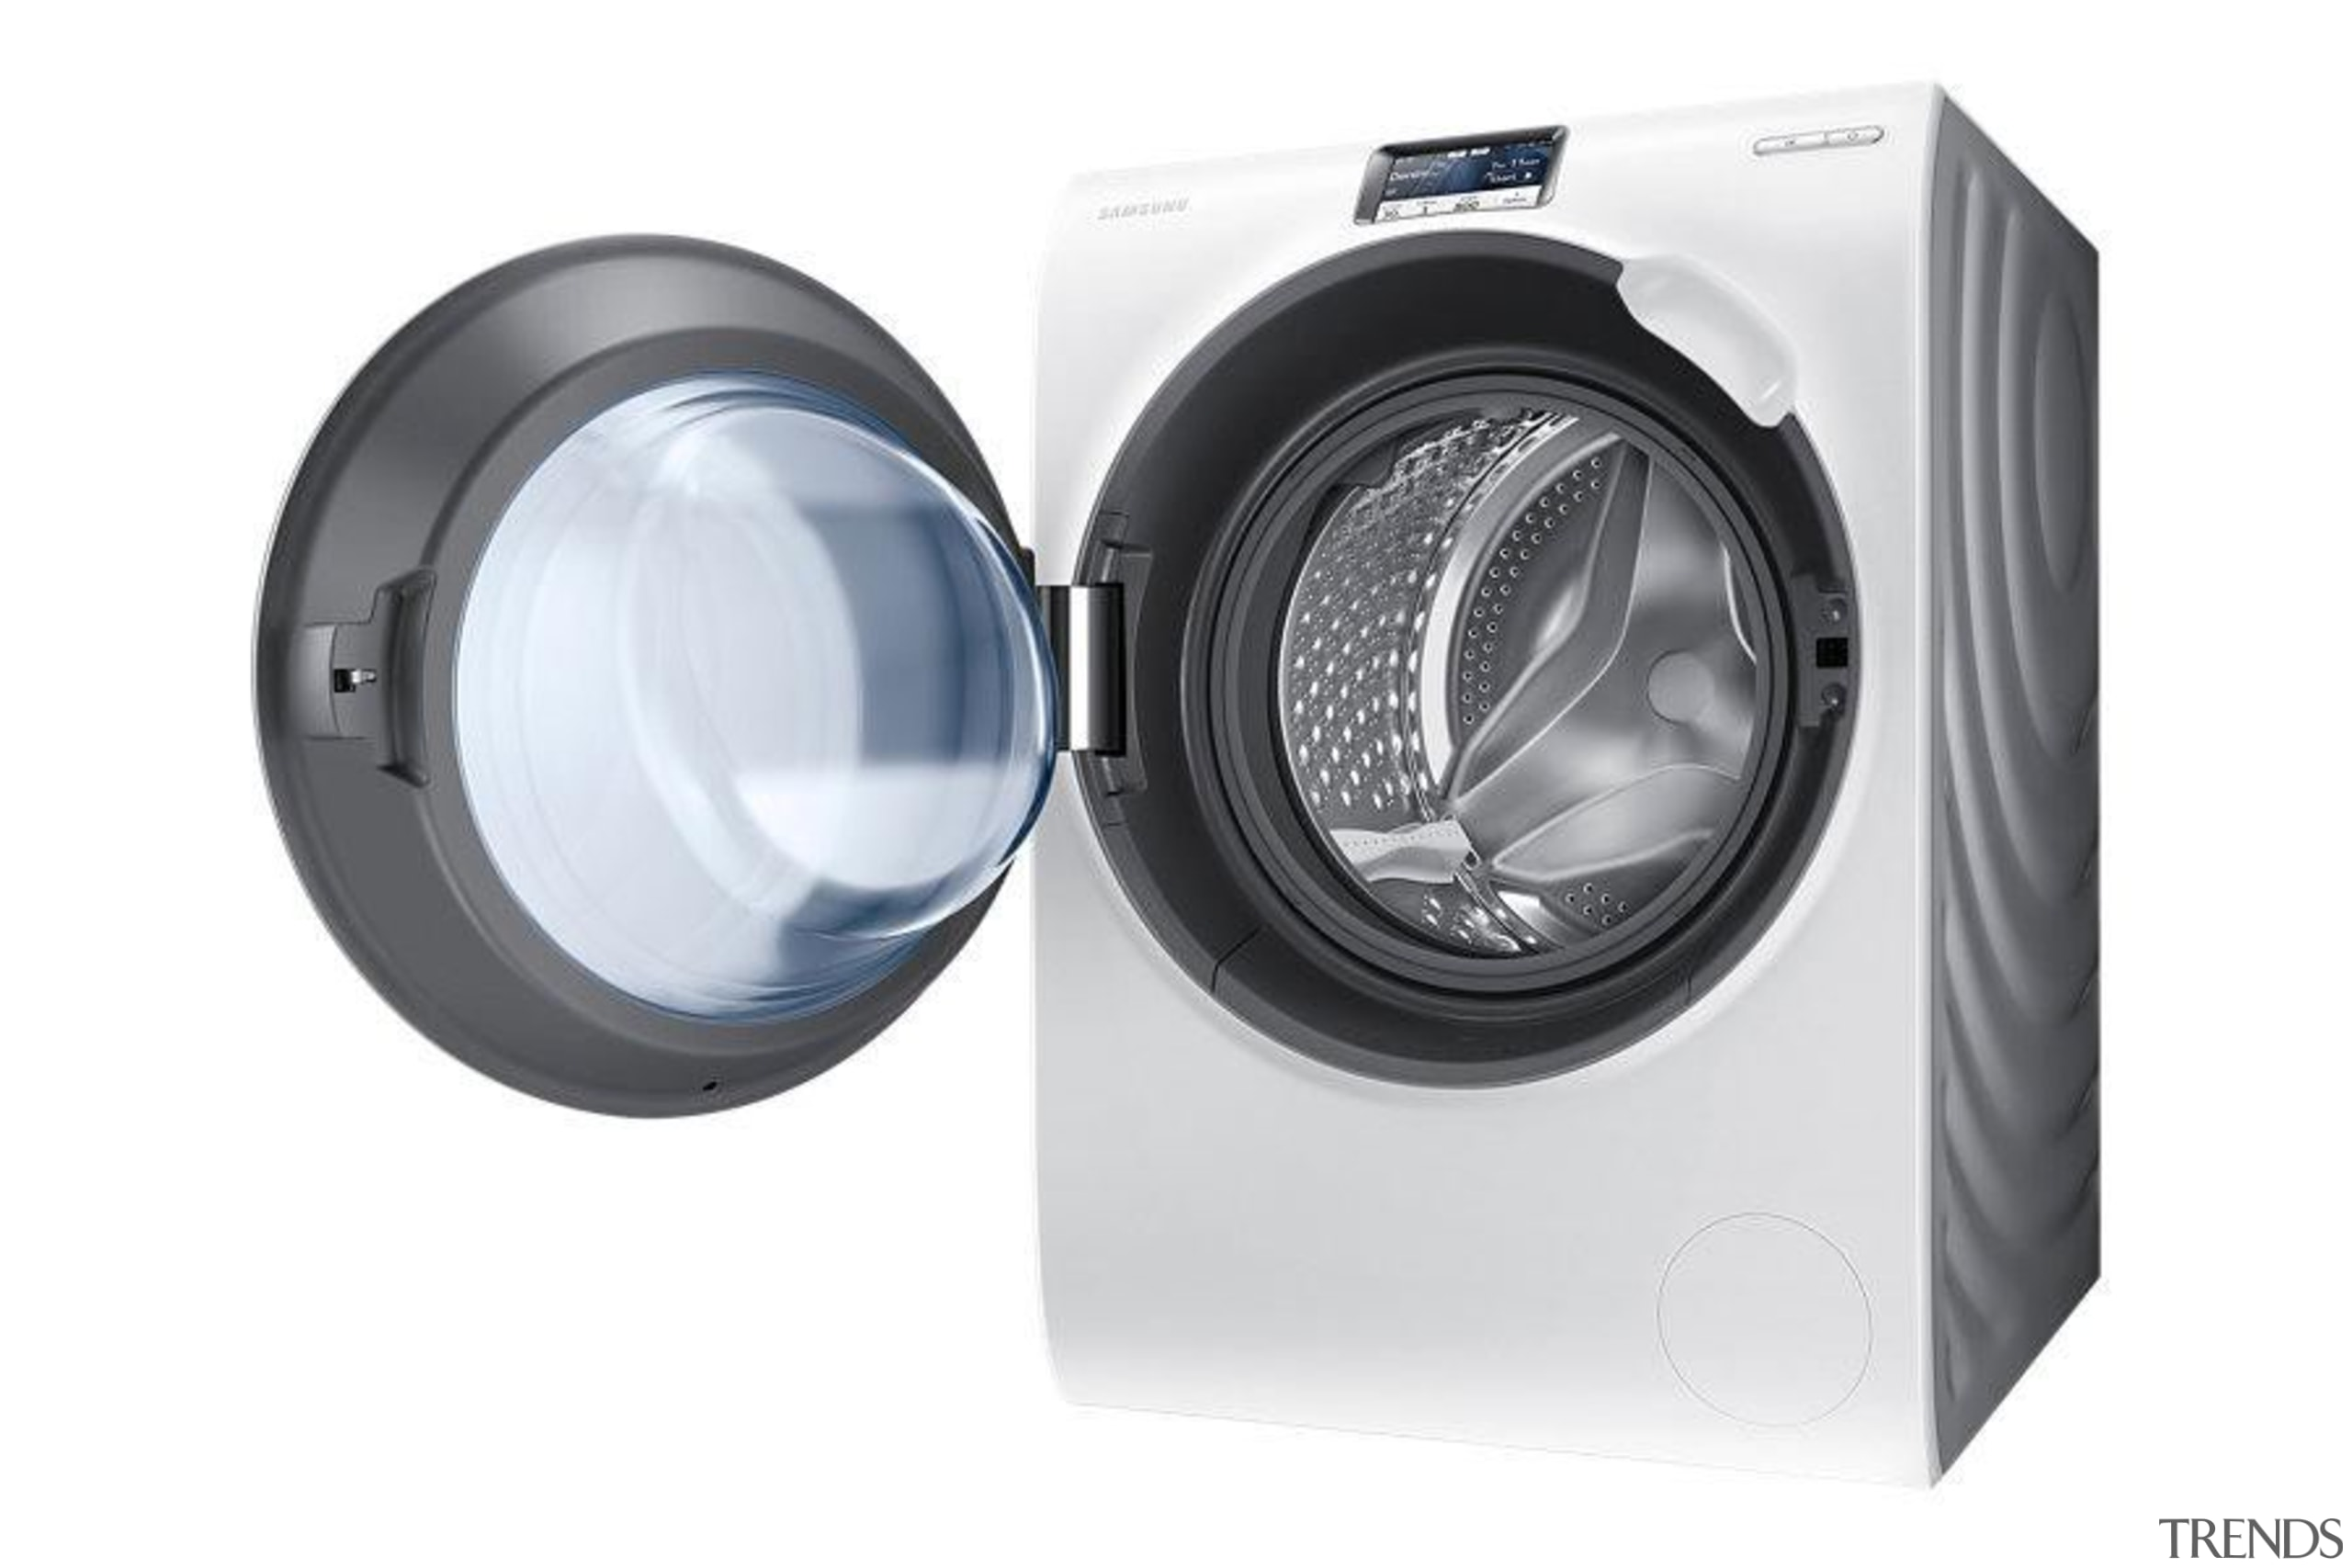 Laundry-Front loader WW90H9600EW/SAWW9000 is a washing machine with car subwoofer, clothes dryer, computer speaker, home appliance, major appliance, product, product design, sound box, washing machine, white